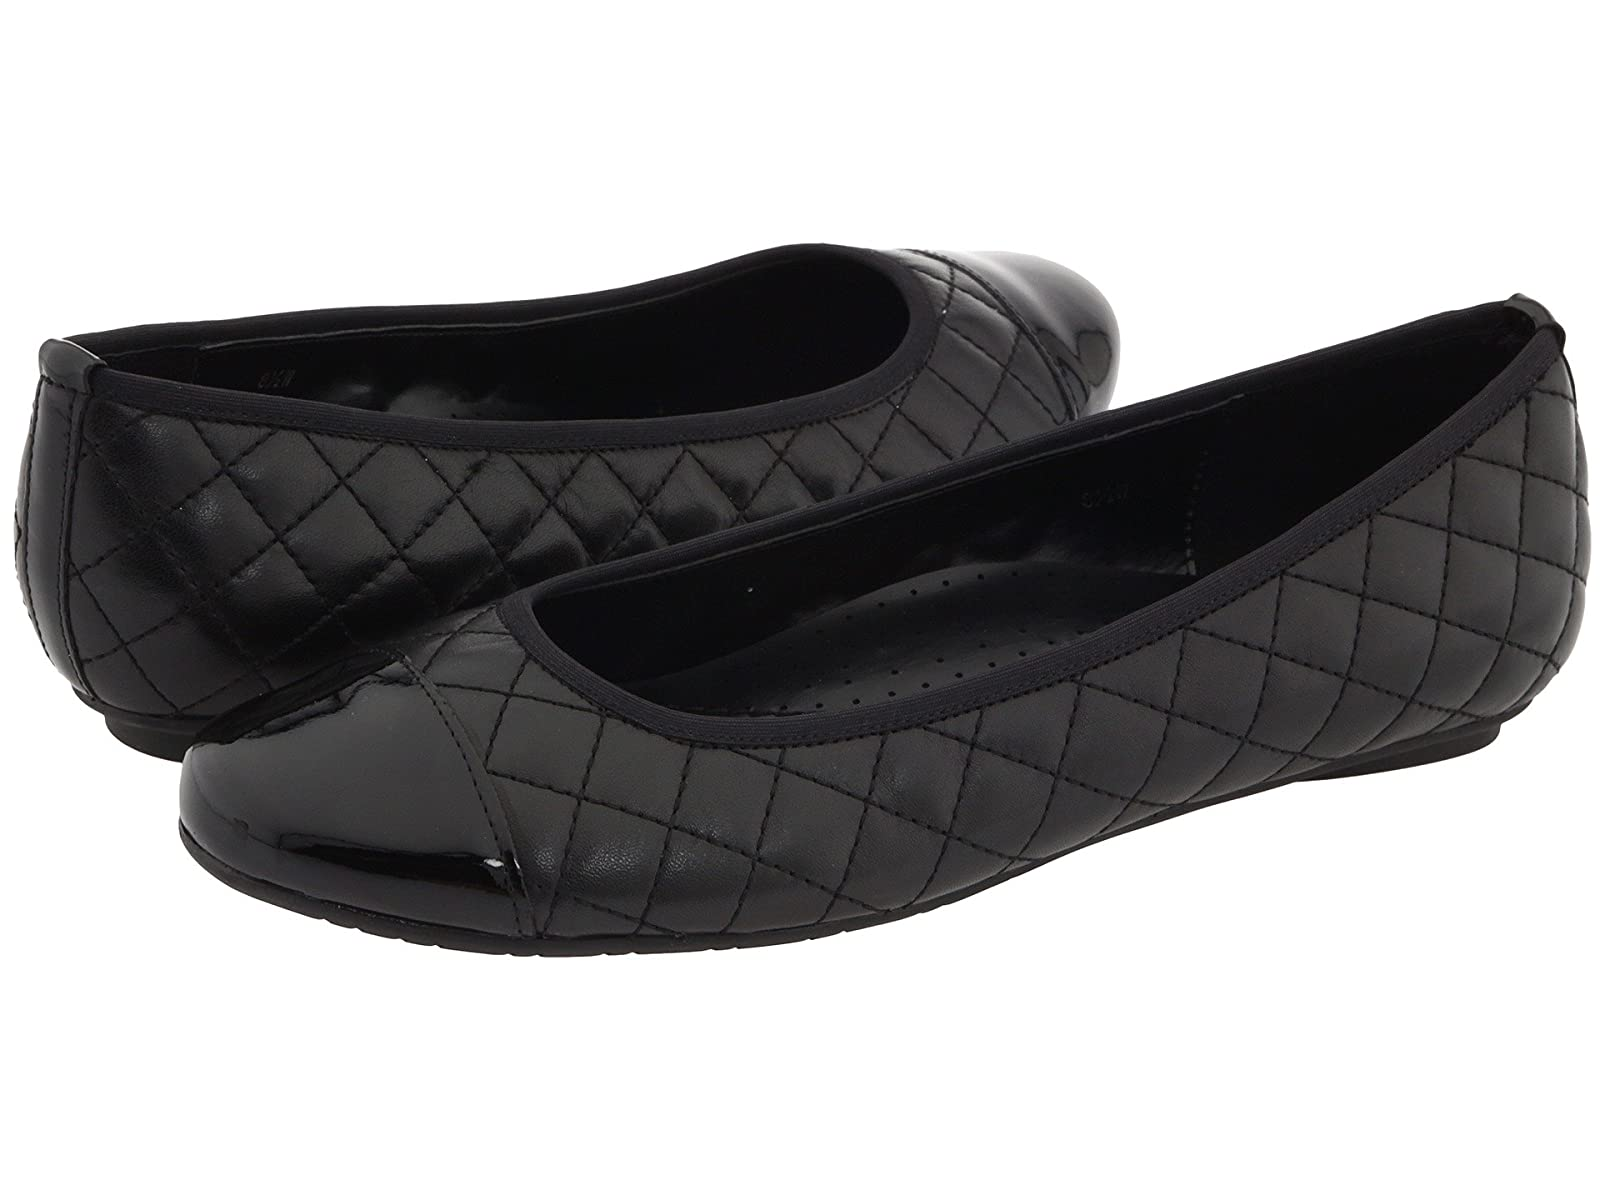 Vaneli SereneAtmospheric grades have affordable shoes